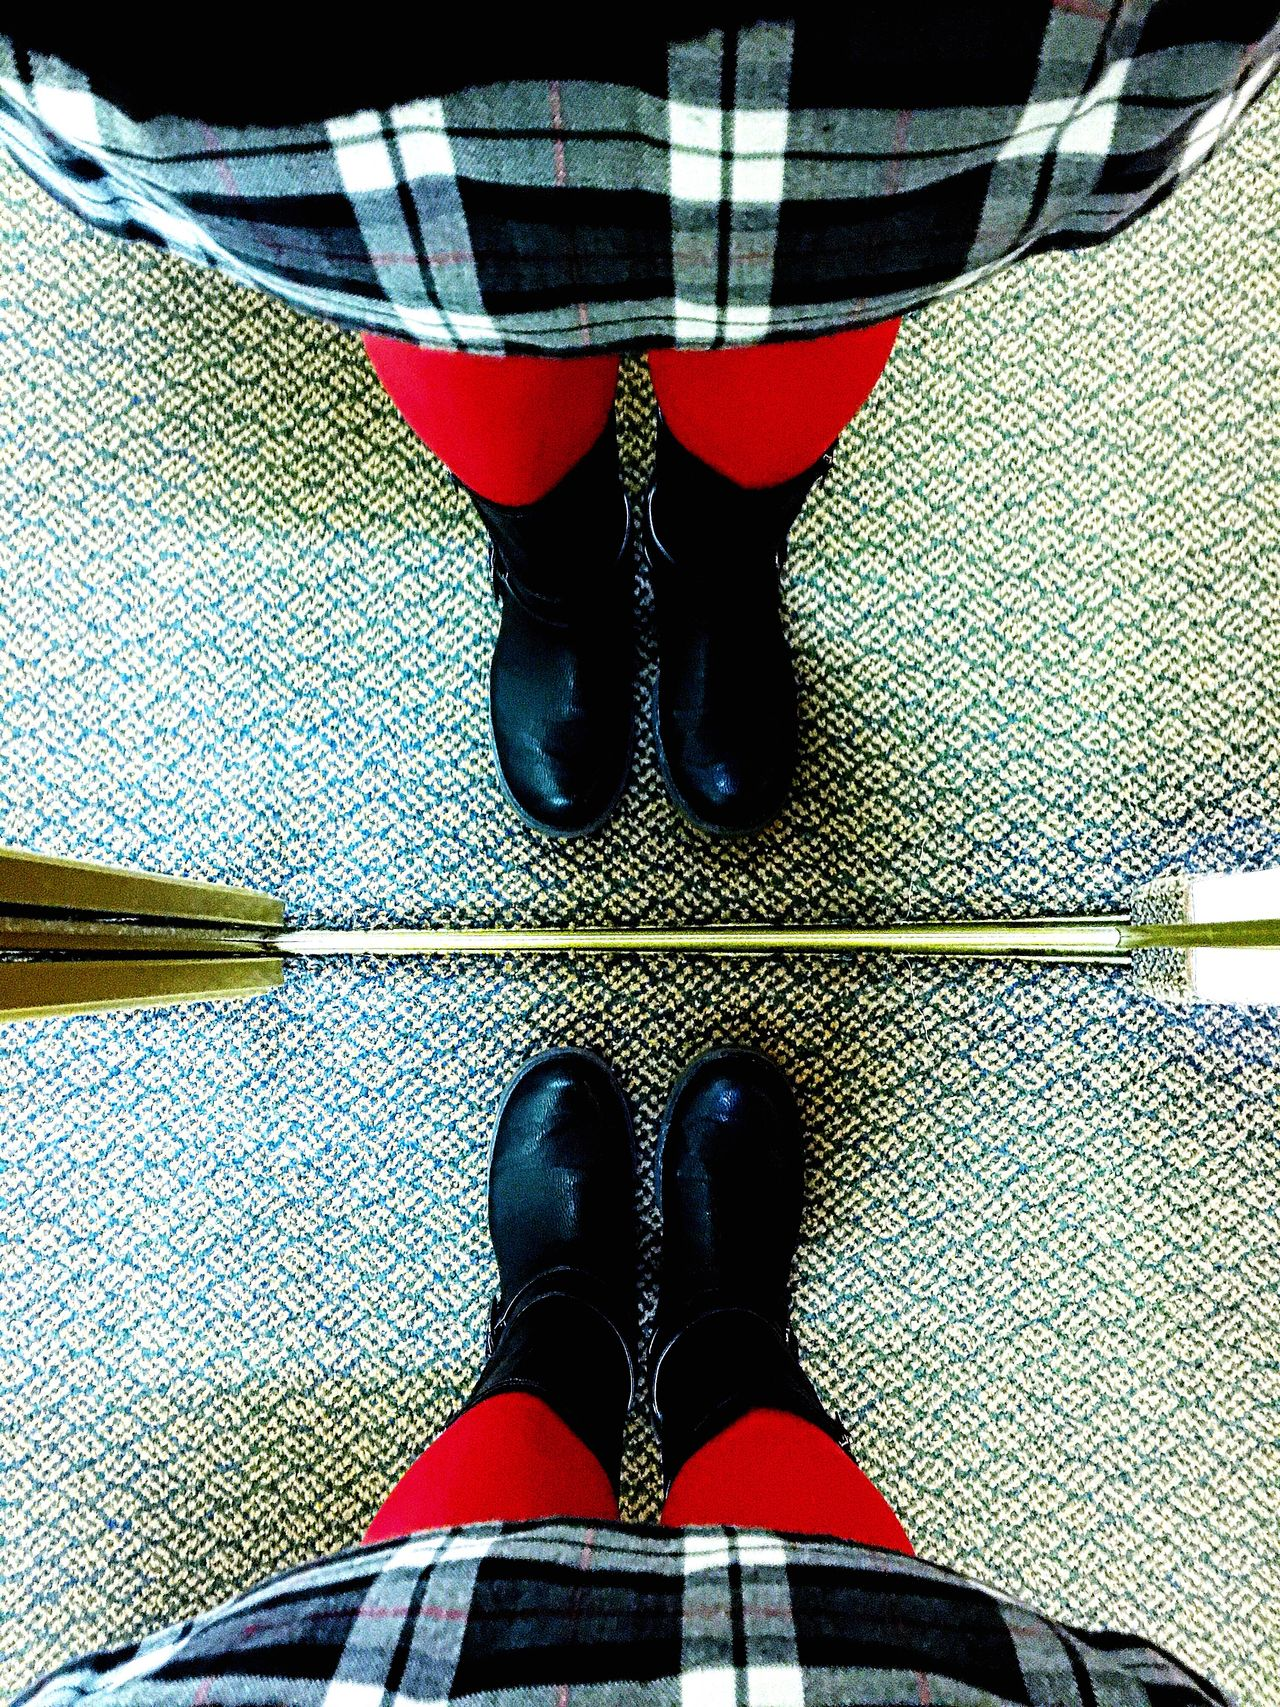 👠Reflection👠 Low Section Person Standing Shoe Colorsandpatterns Colors And Patterns Personal Perspective Fresh On Eyeem  This Week On Eyeem EyeEm Gallery EyeEm Check This Out Eyeemgallery EyeemShot EyeEm Best Shots EyeemPhotos Self Feet Reflection fFootwear dDay EyeEm Masterclass